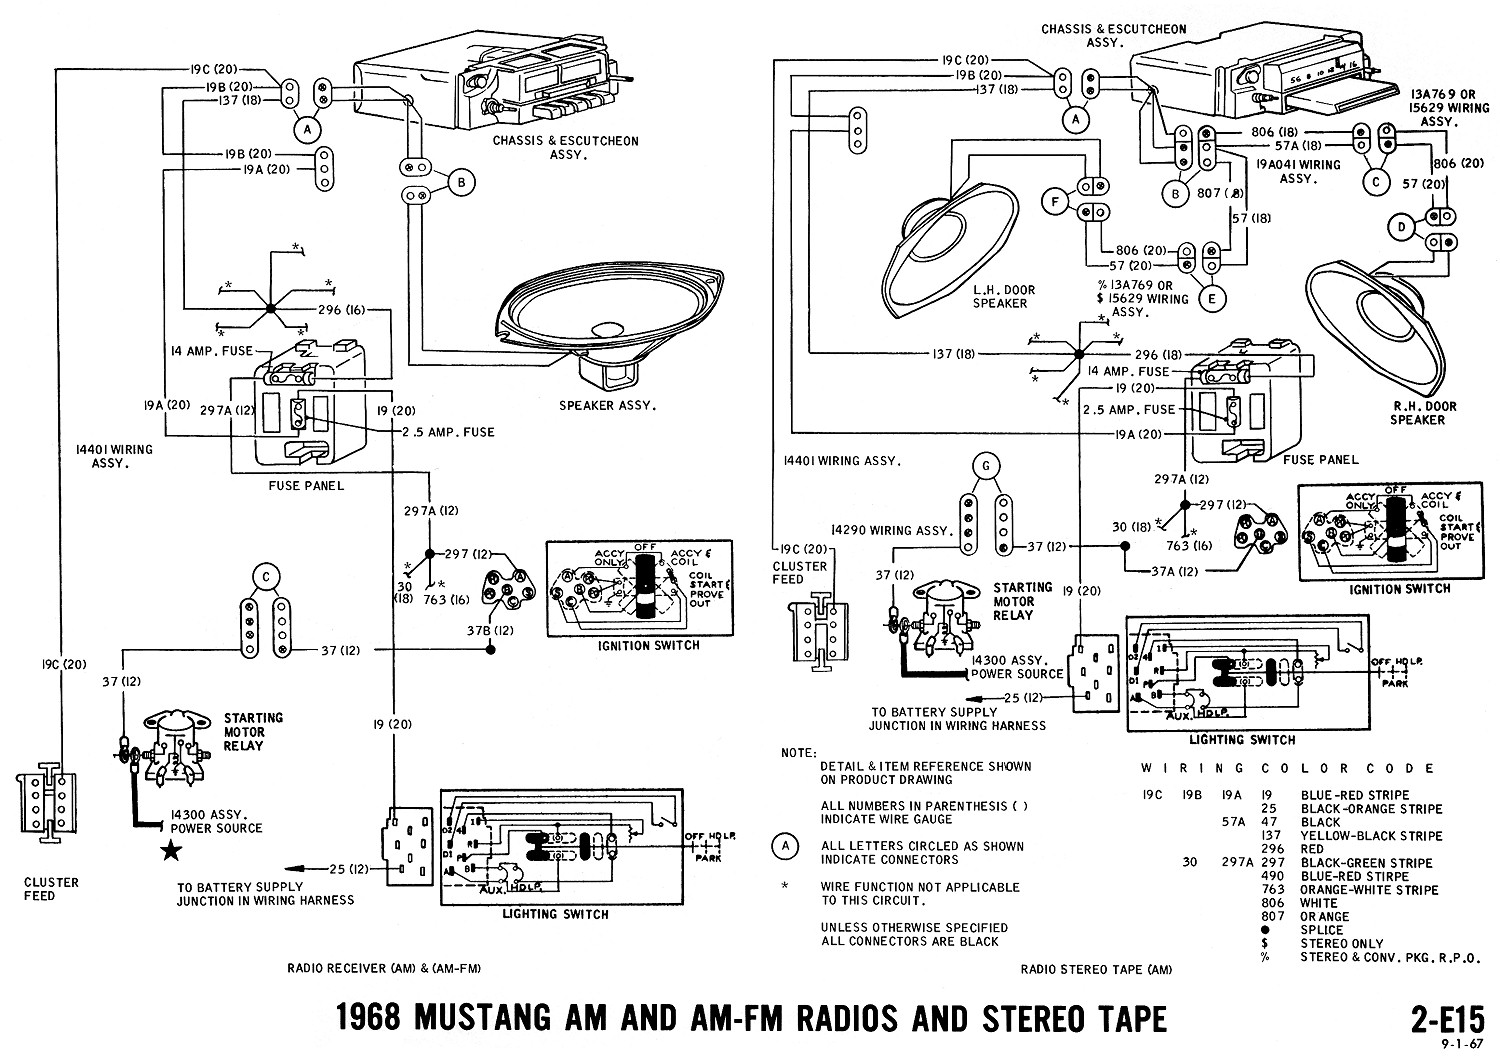 1968 Mustang Wiring Diagrams on silverado radio wiring diagram